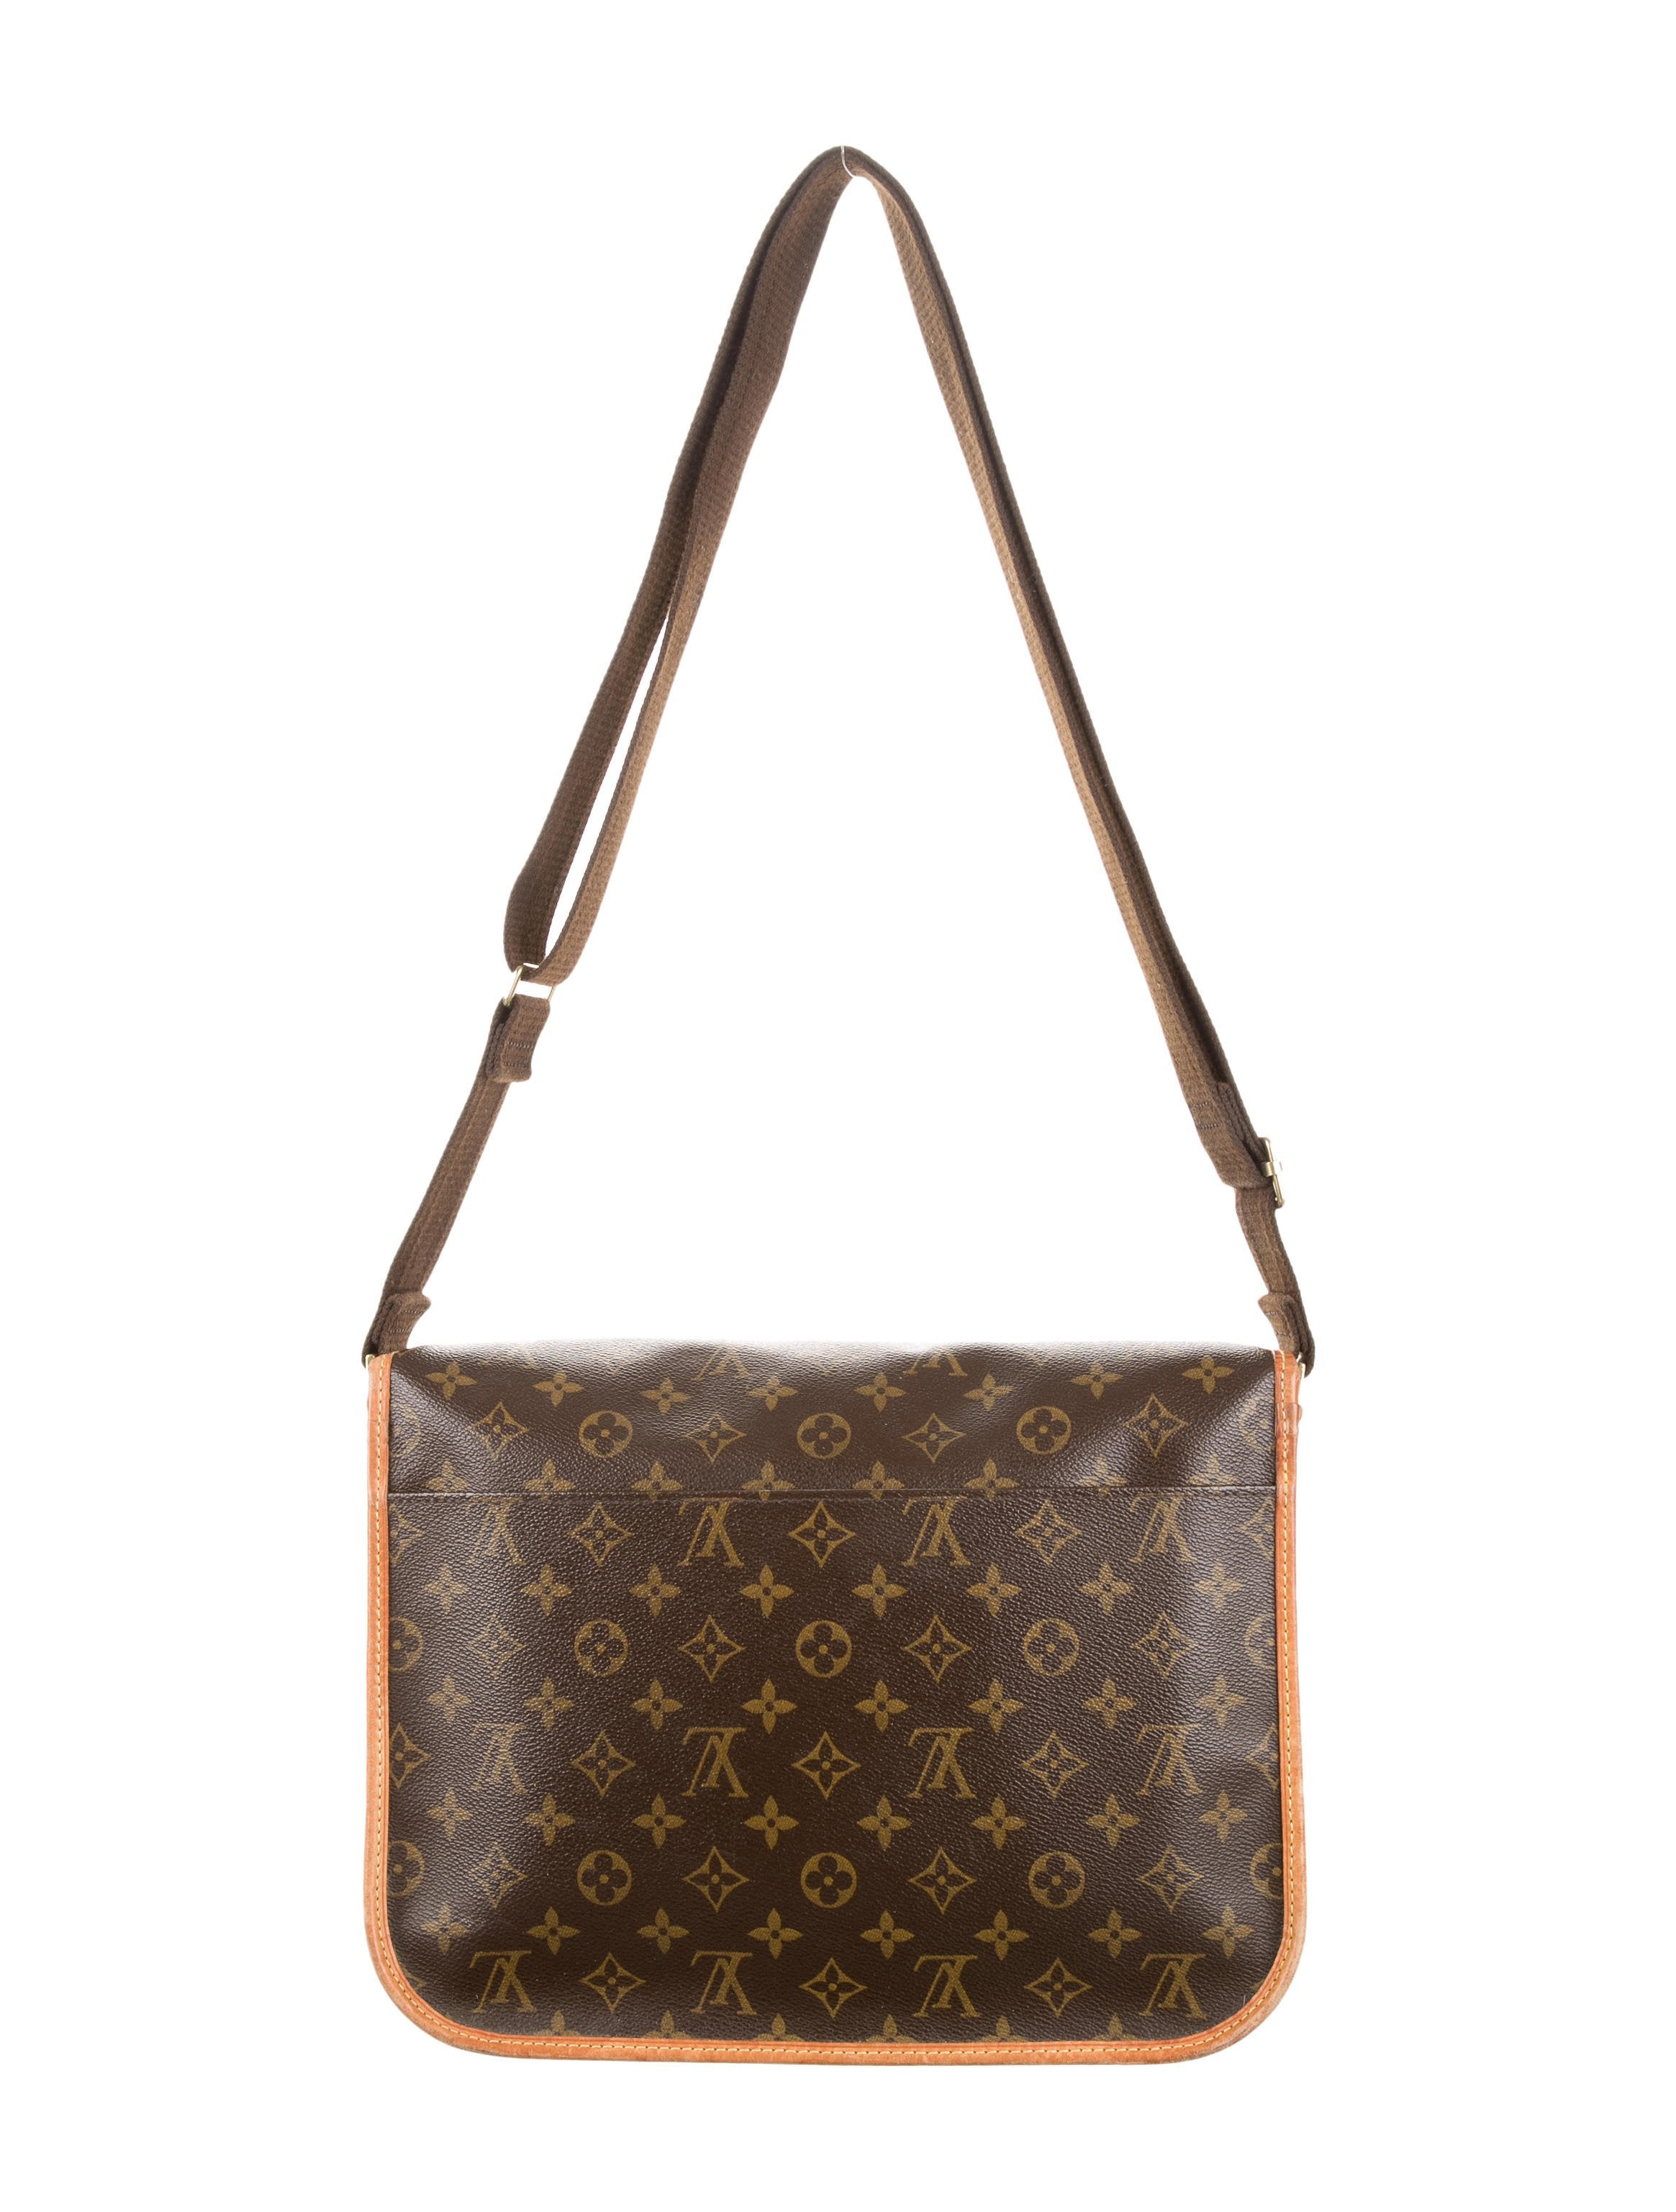 Unique Louis Vuitton Monogram Abbesses Messenger Bag - Handbags - LOU75275 | The RealReal